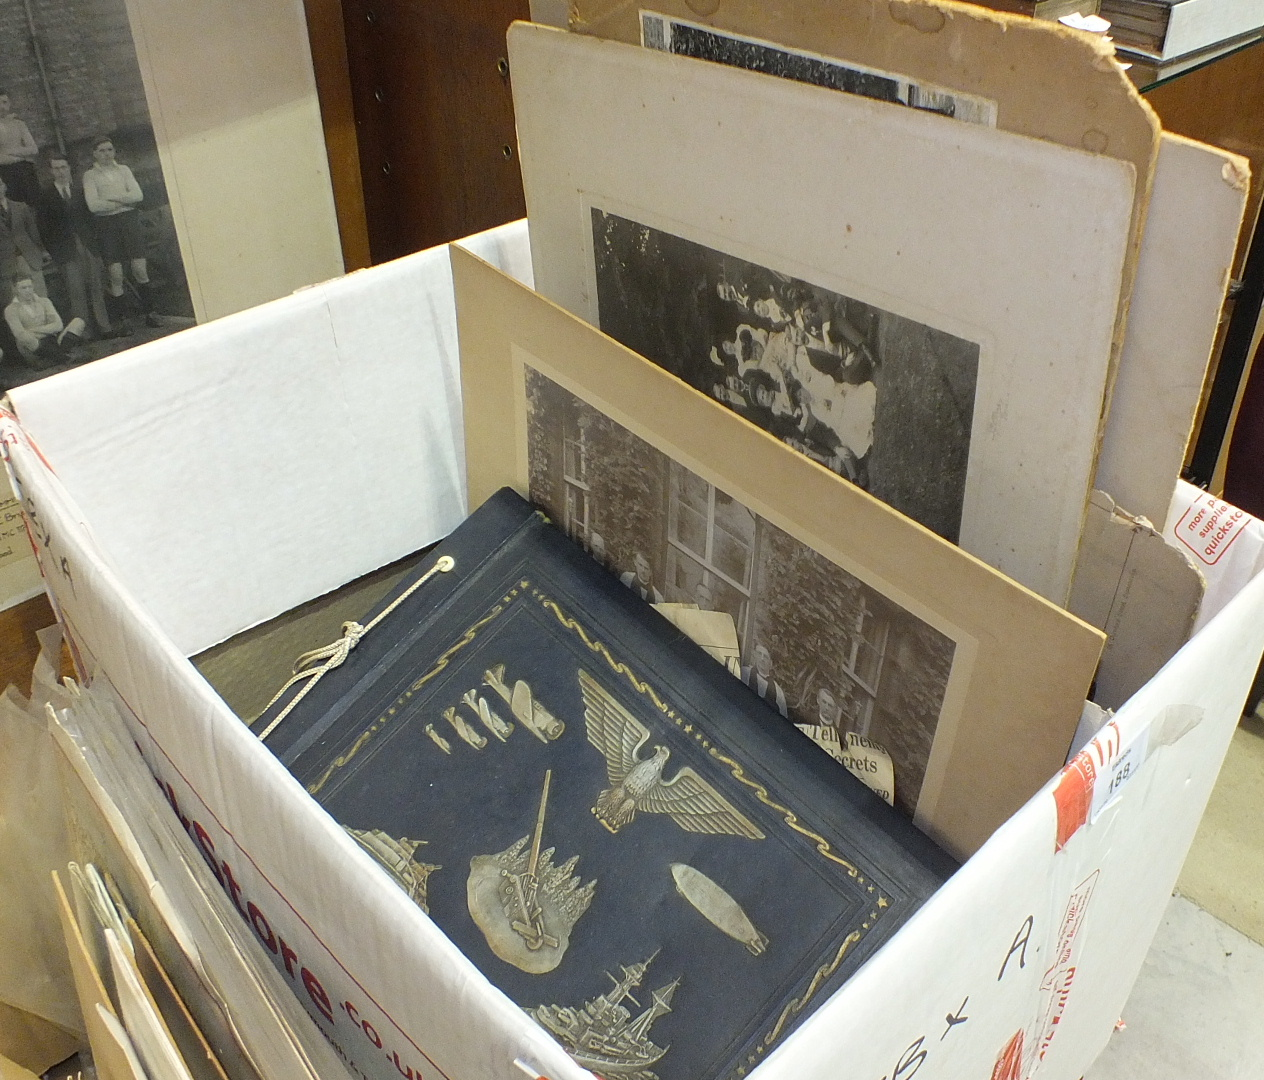 Lot 188 - A collection of WWI and WWII photographs, ration books and ephemera.